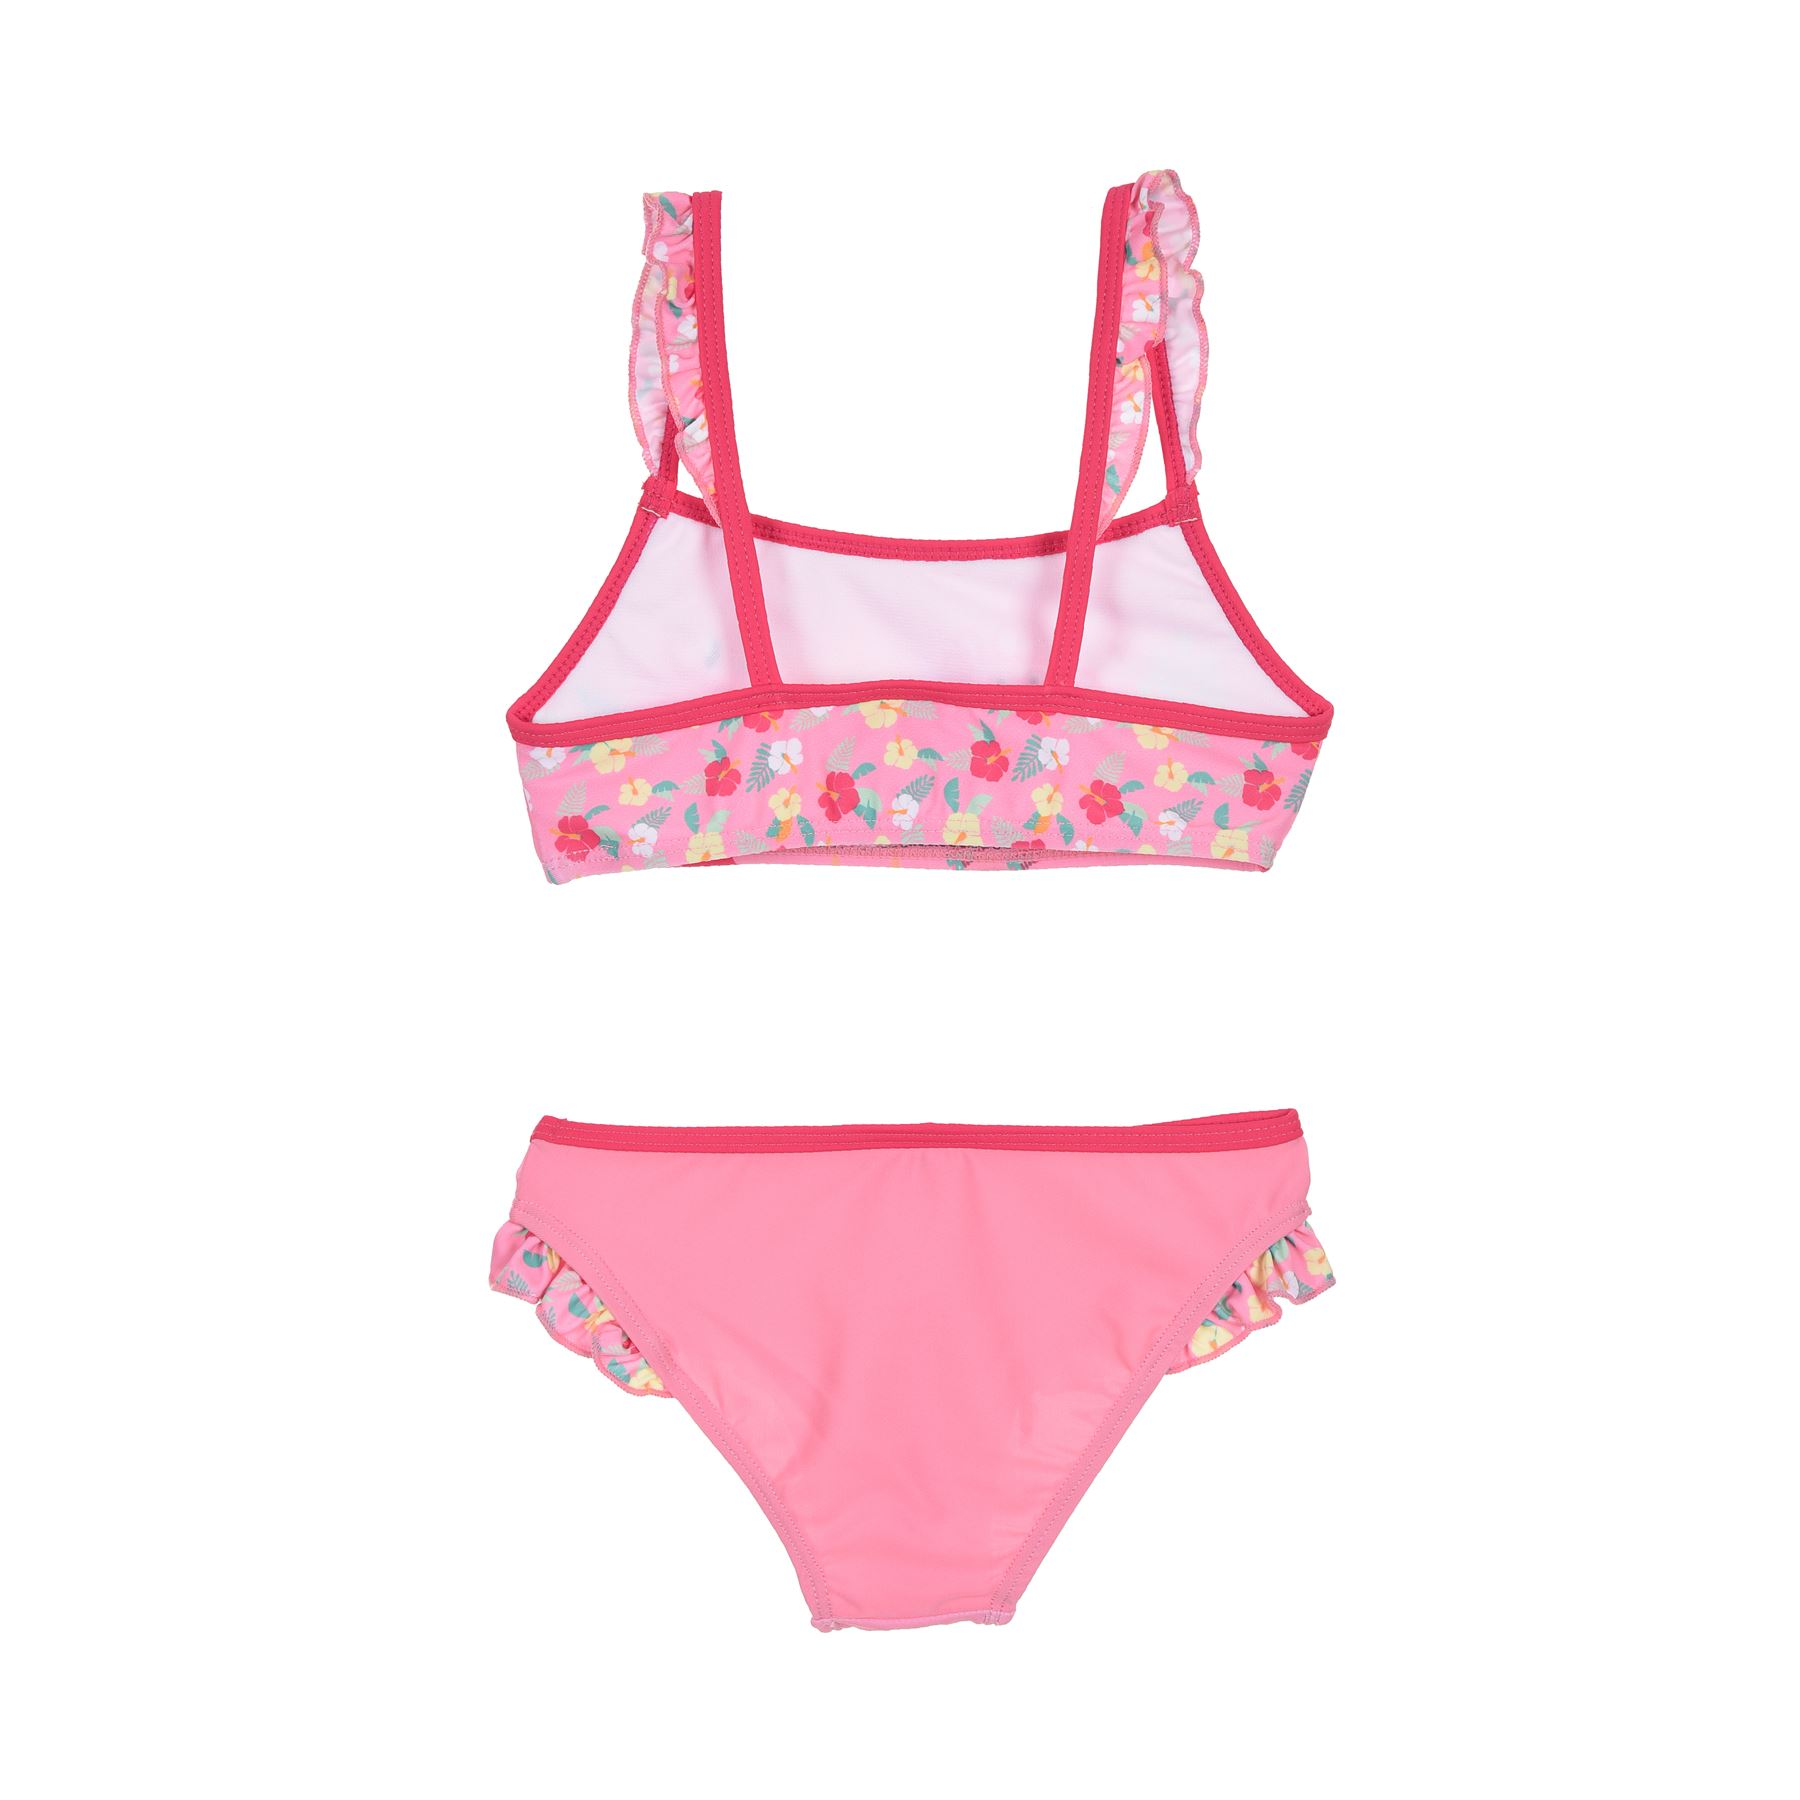 Girls-Bikini-Set-Childrens-Kids-Swimming-Costume-Age-3-8-Years thumbnail 70